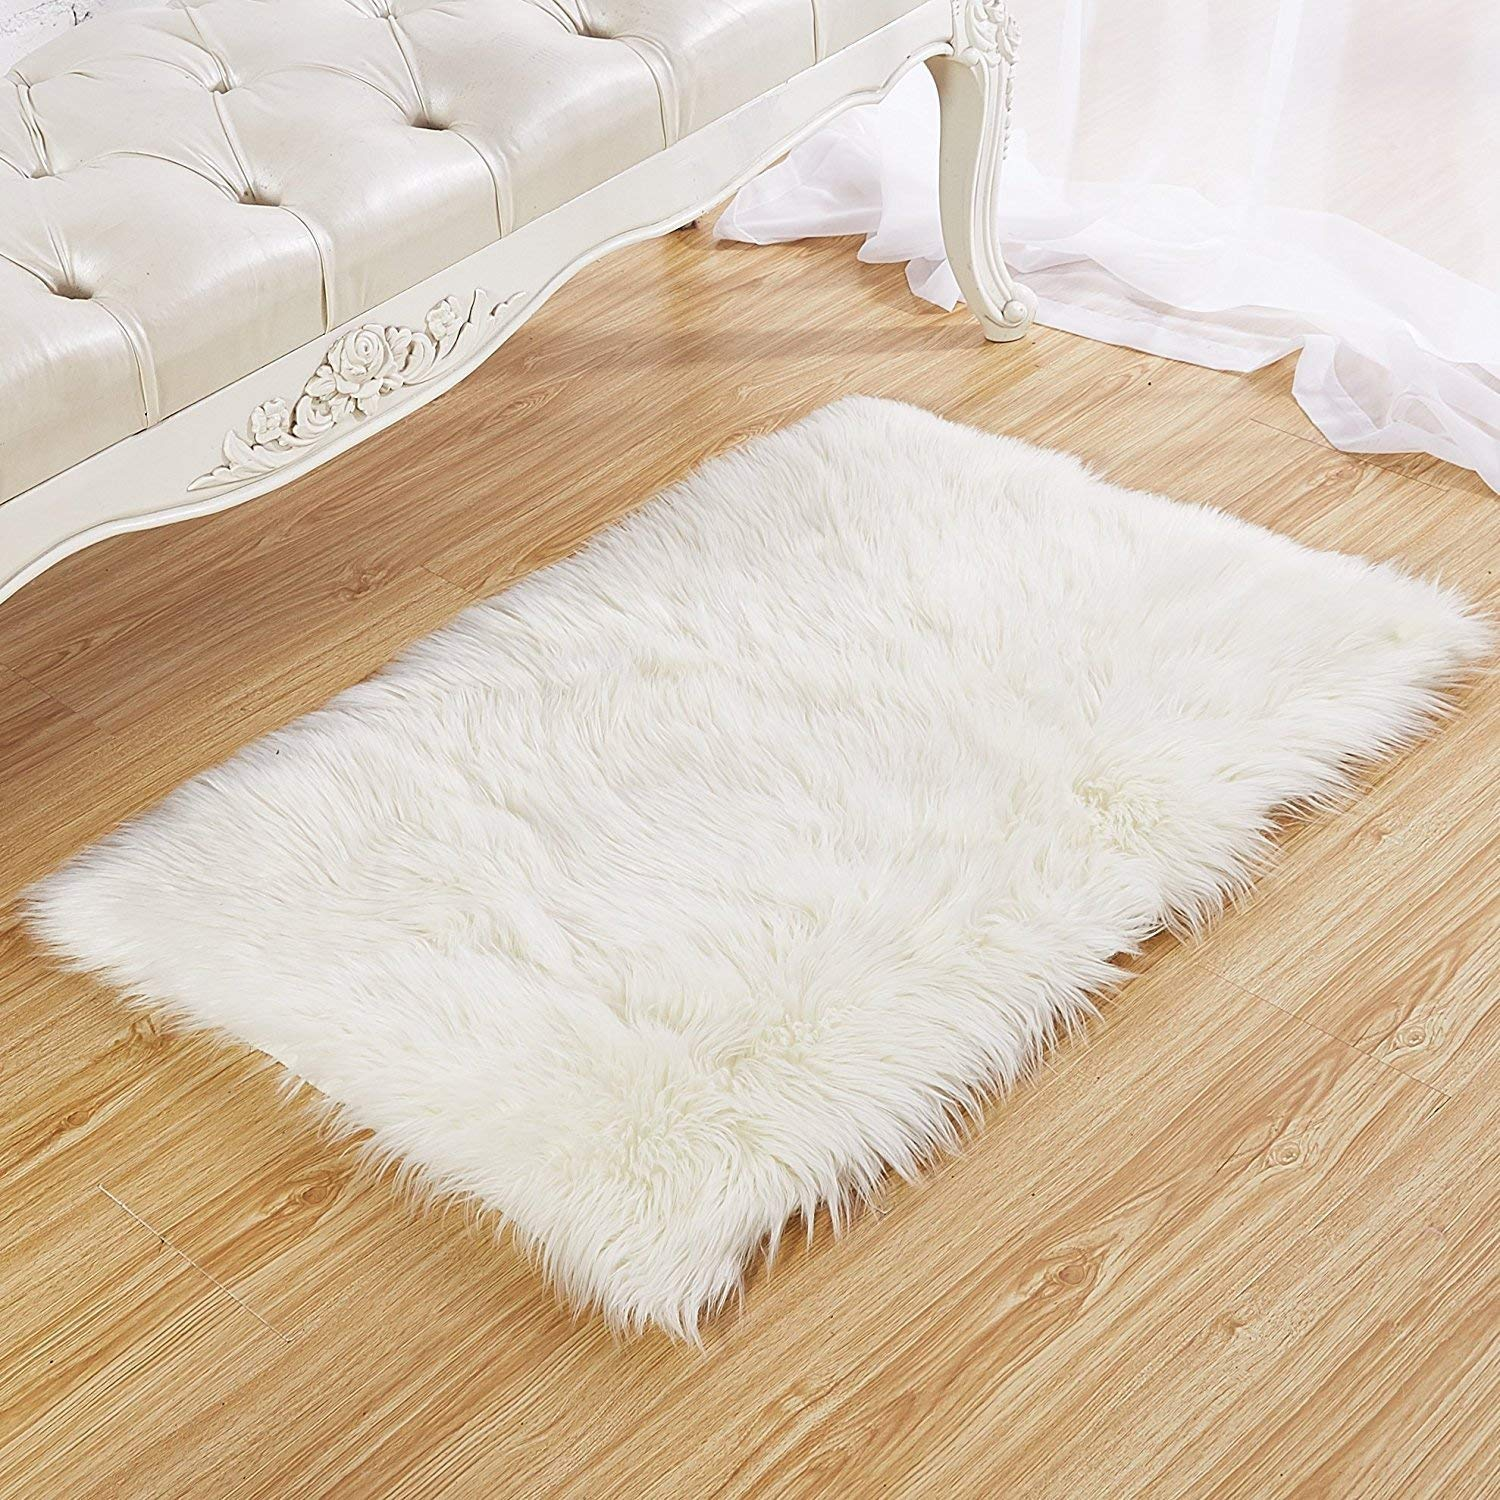 Faux Fur Rug 60 X 90 cm Tayyakoushi Soft Fluffy Rug Shaggy Rugs Faux Sheepskin Rugs Floor Carpet for Living Room Bedrooms Decor (White)